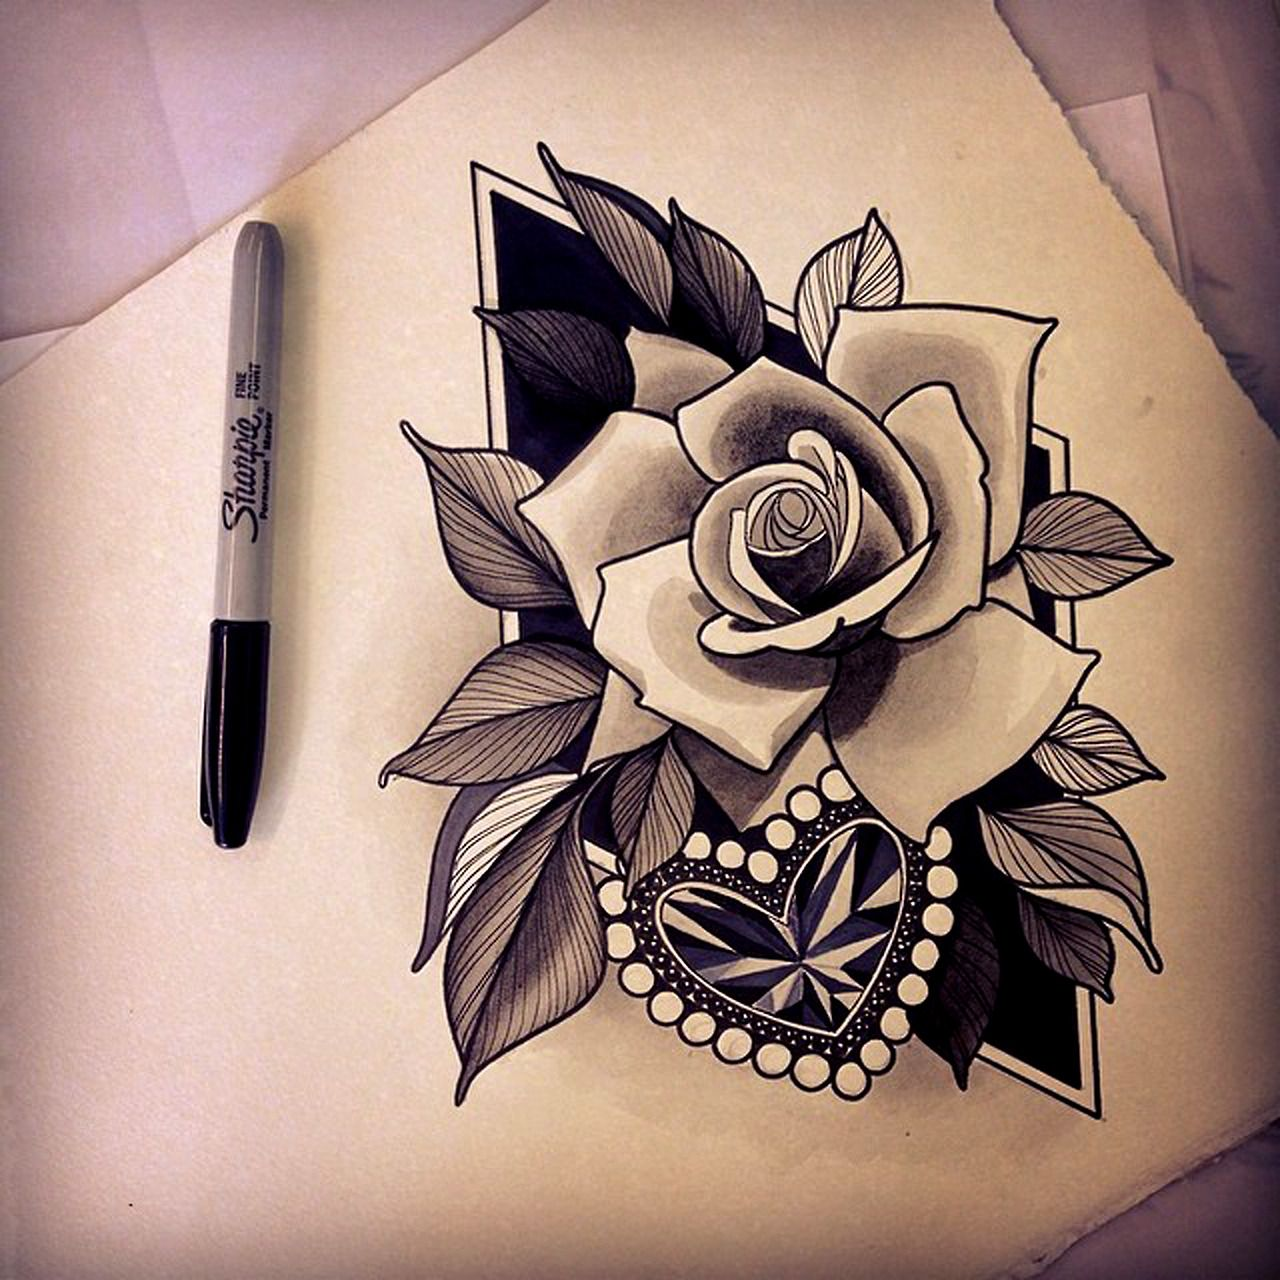 Loving This As A Thigh Tat Without The Diamond Background